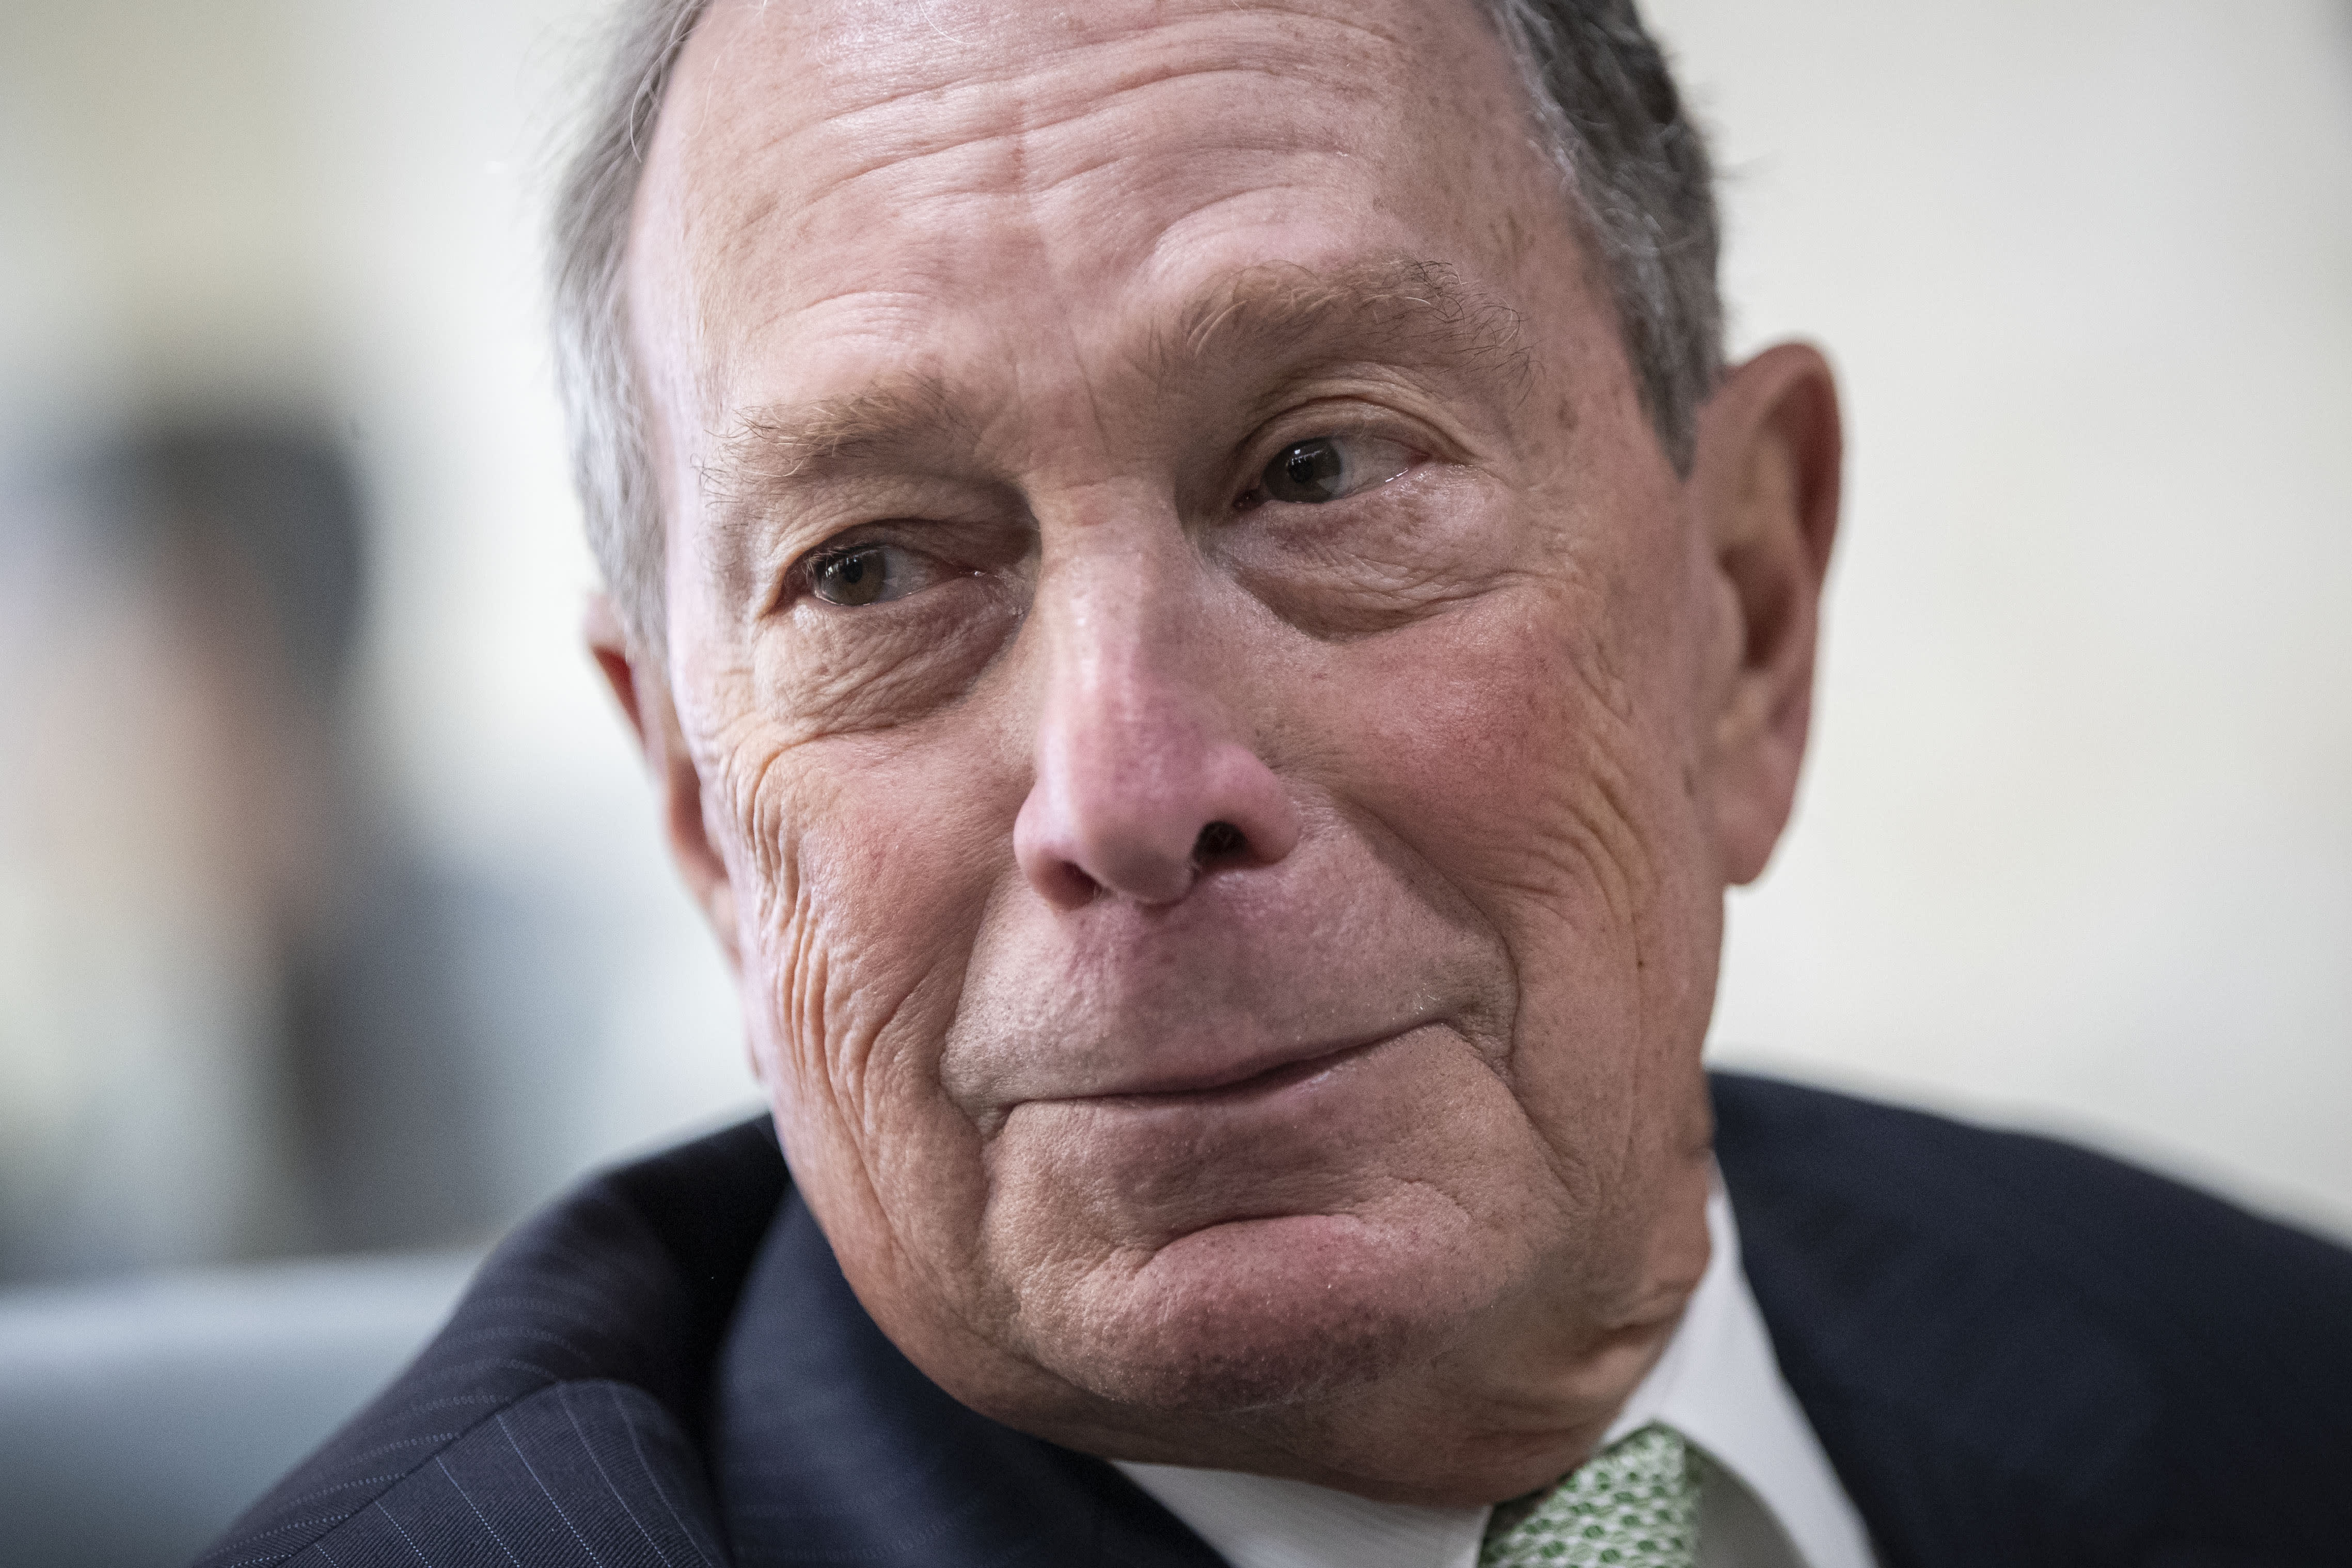 'I have the same rights as anybody else' to run in the 2020 election, Mike Bloomberg says